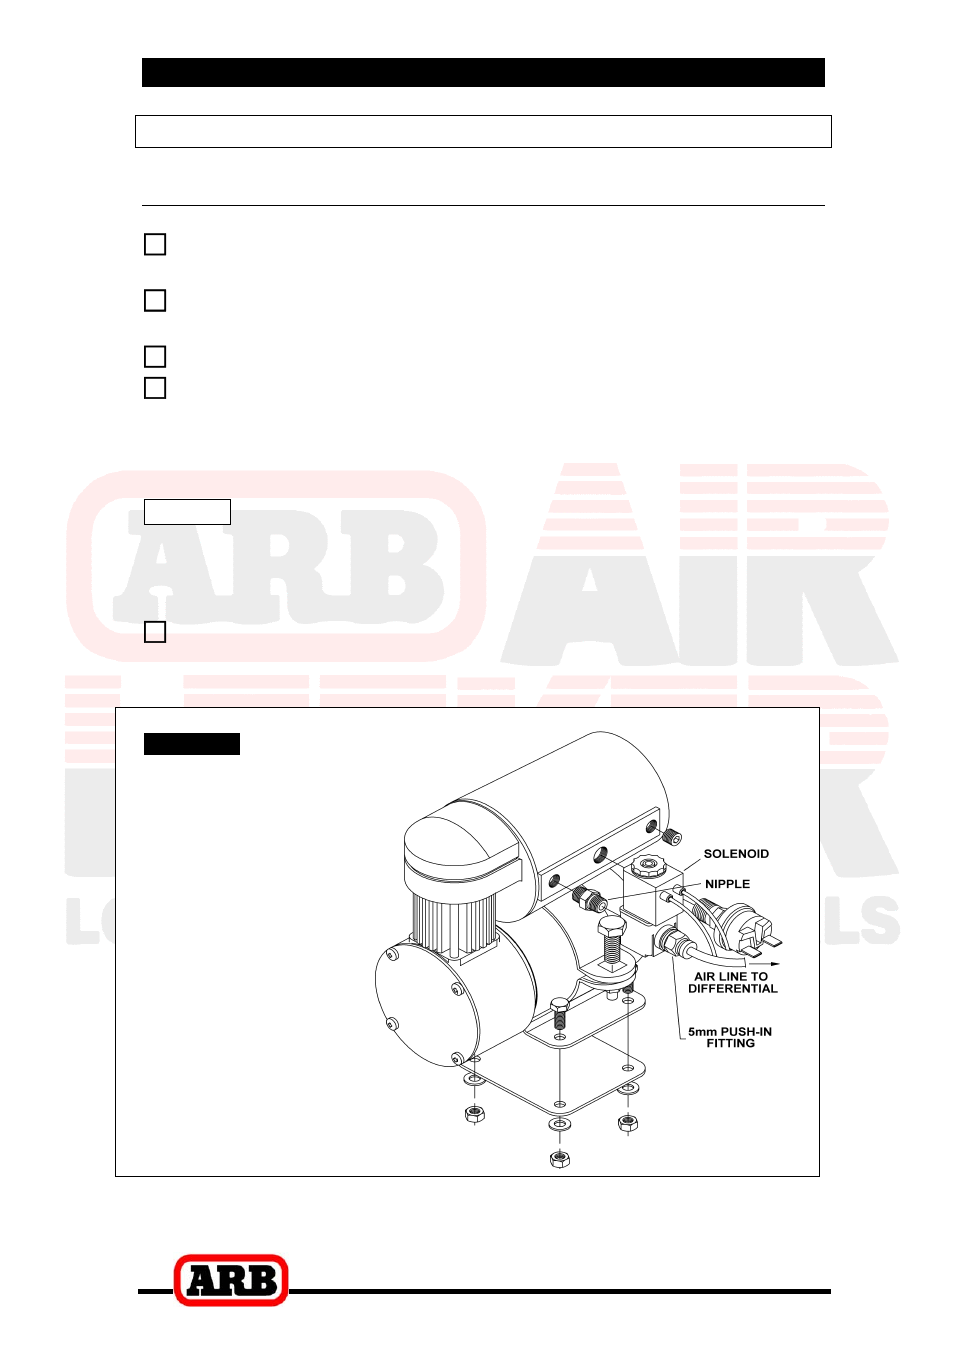 Arb Compressor Wiring Diagram Schematic Wire Center Air Rd142 User Manual Page 24 38 Original Mode Rh Manualsdir Com Locker